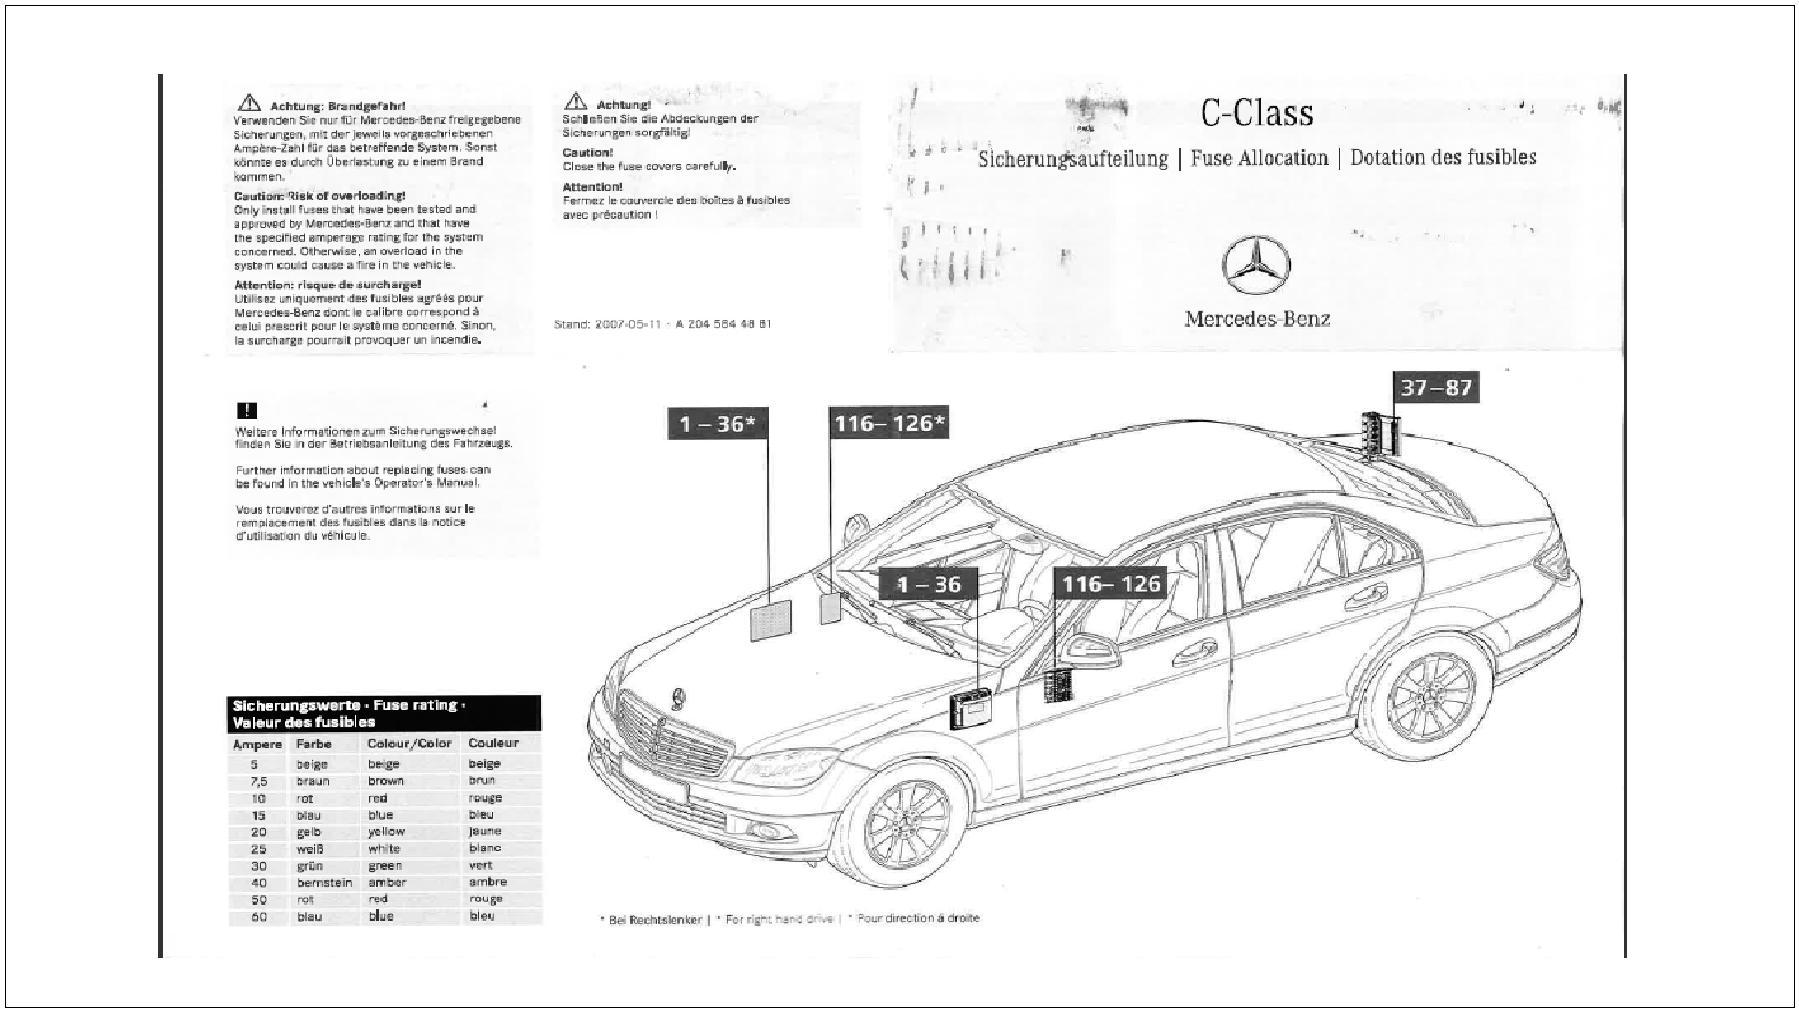 Mercedes Benz C Class W204 Fuse Diagrams And Commonly Blown Fuses Circuit Breaker Box Allocation Chart Page 1